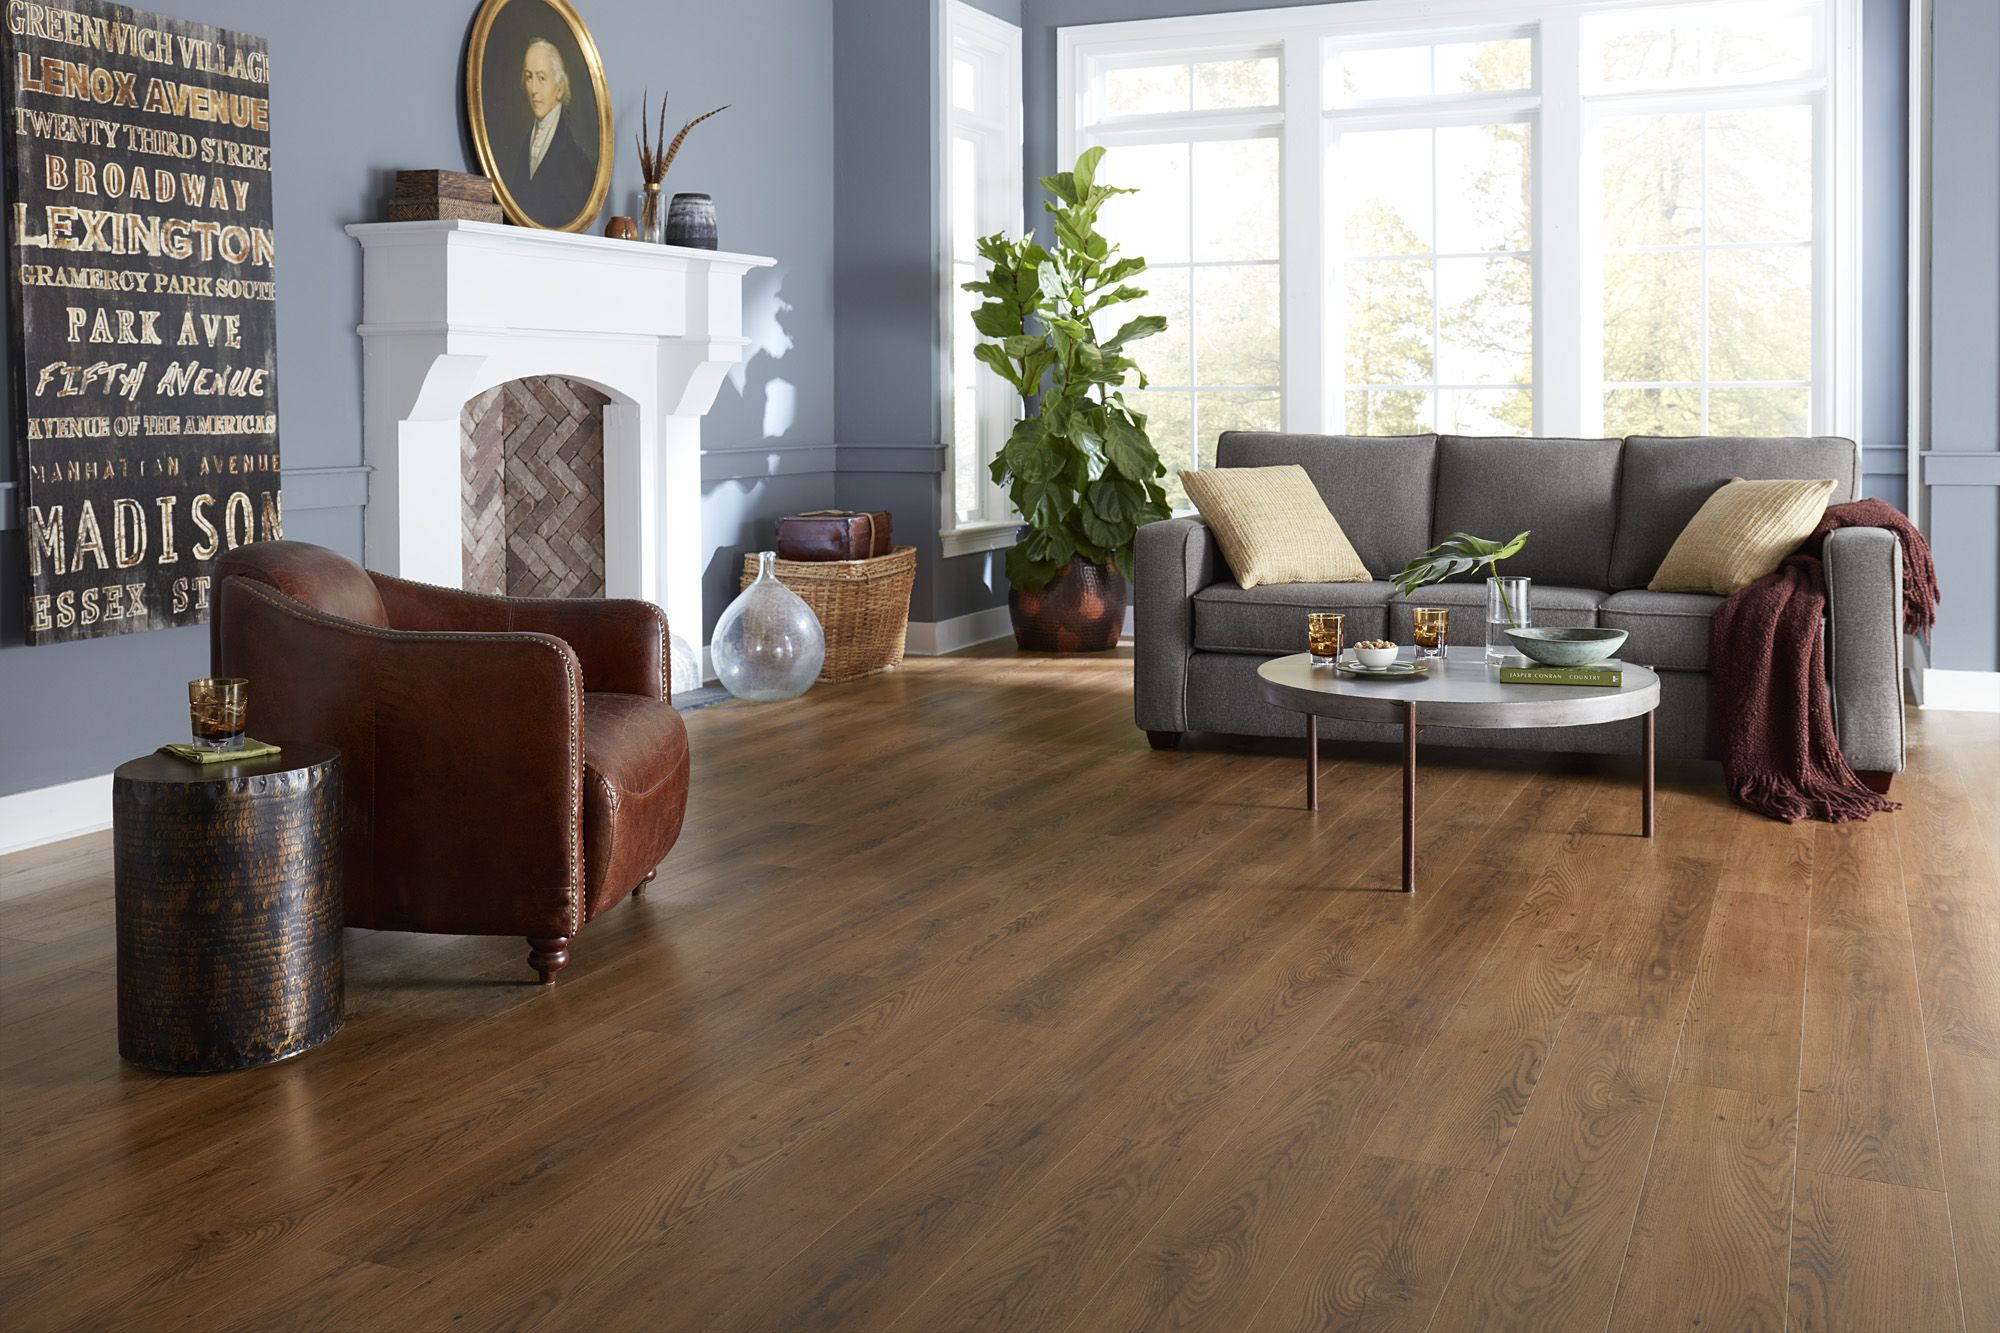 Coreluxe Ultra Walnut Hickory Evp Waterproof And Worry Proof Engineered Vinyl Plank Vinyl Plank Hickory Flooring